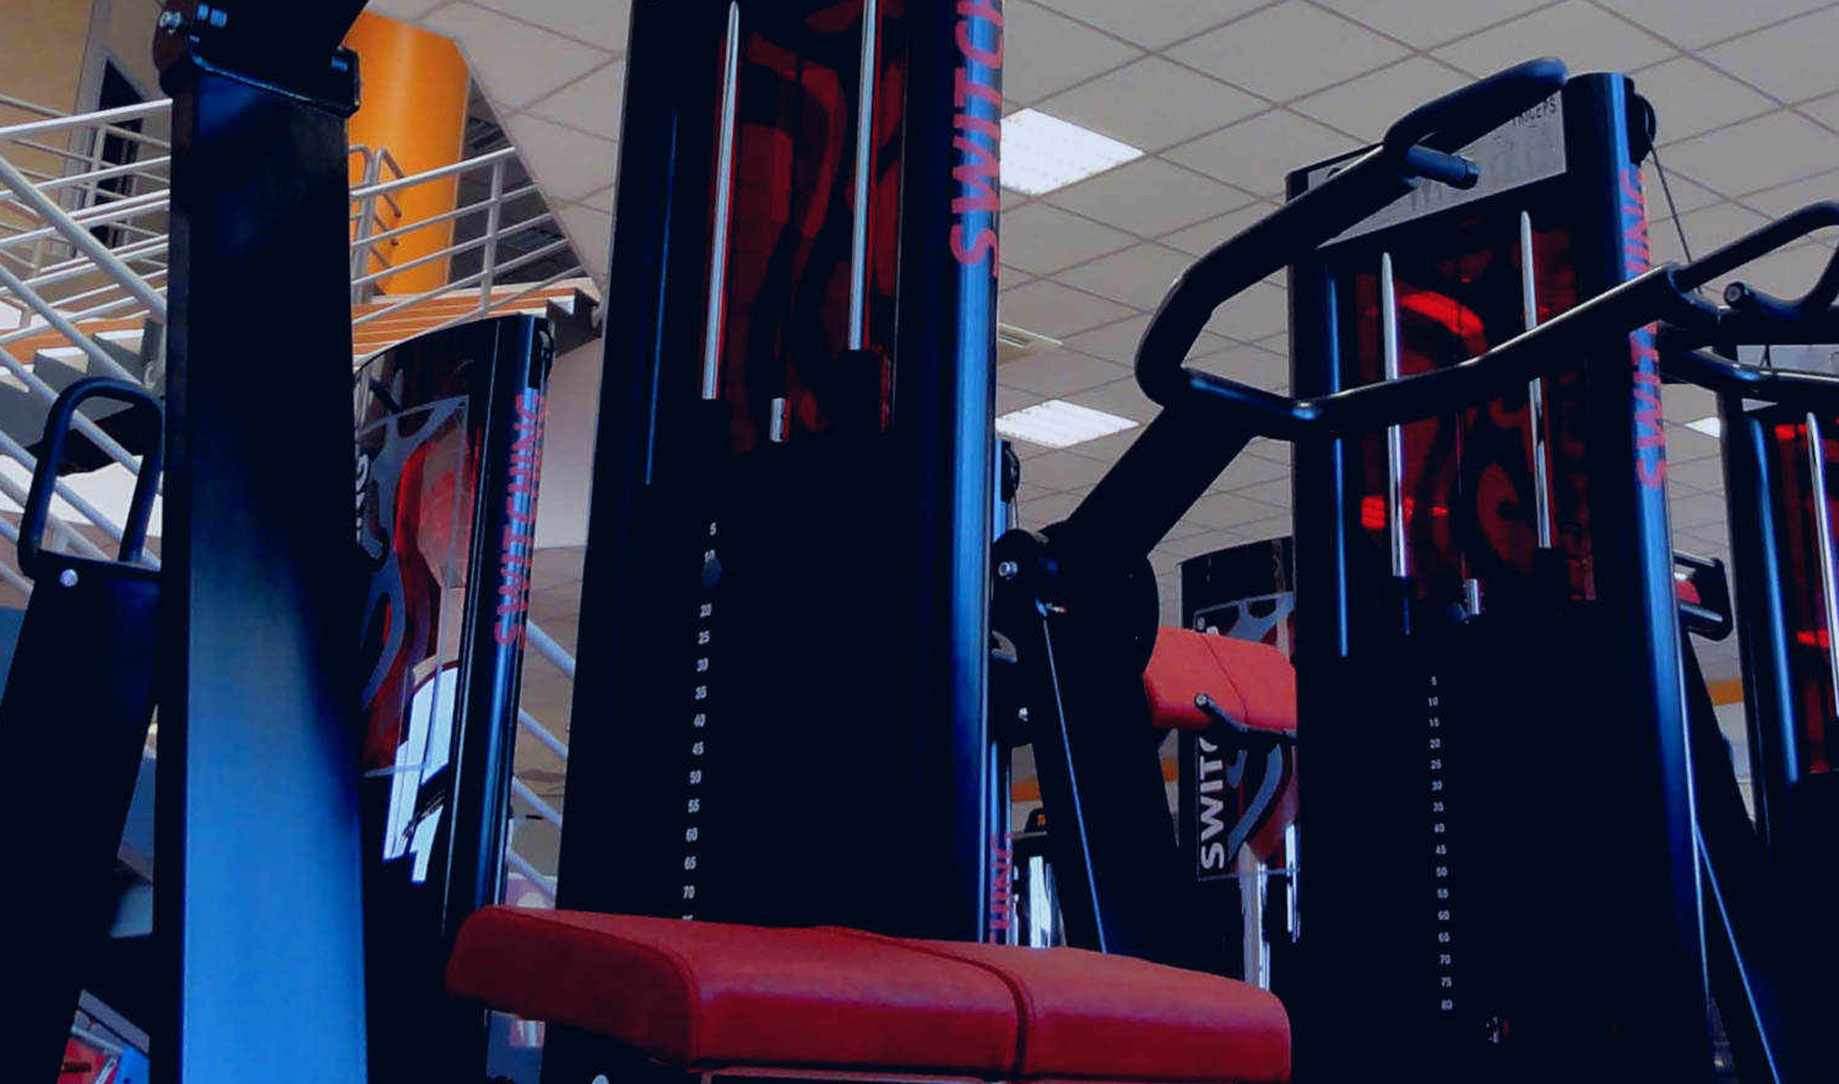 switching fitness come dimagrire divertendoti